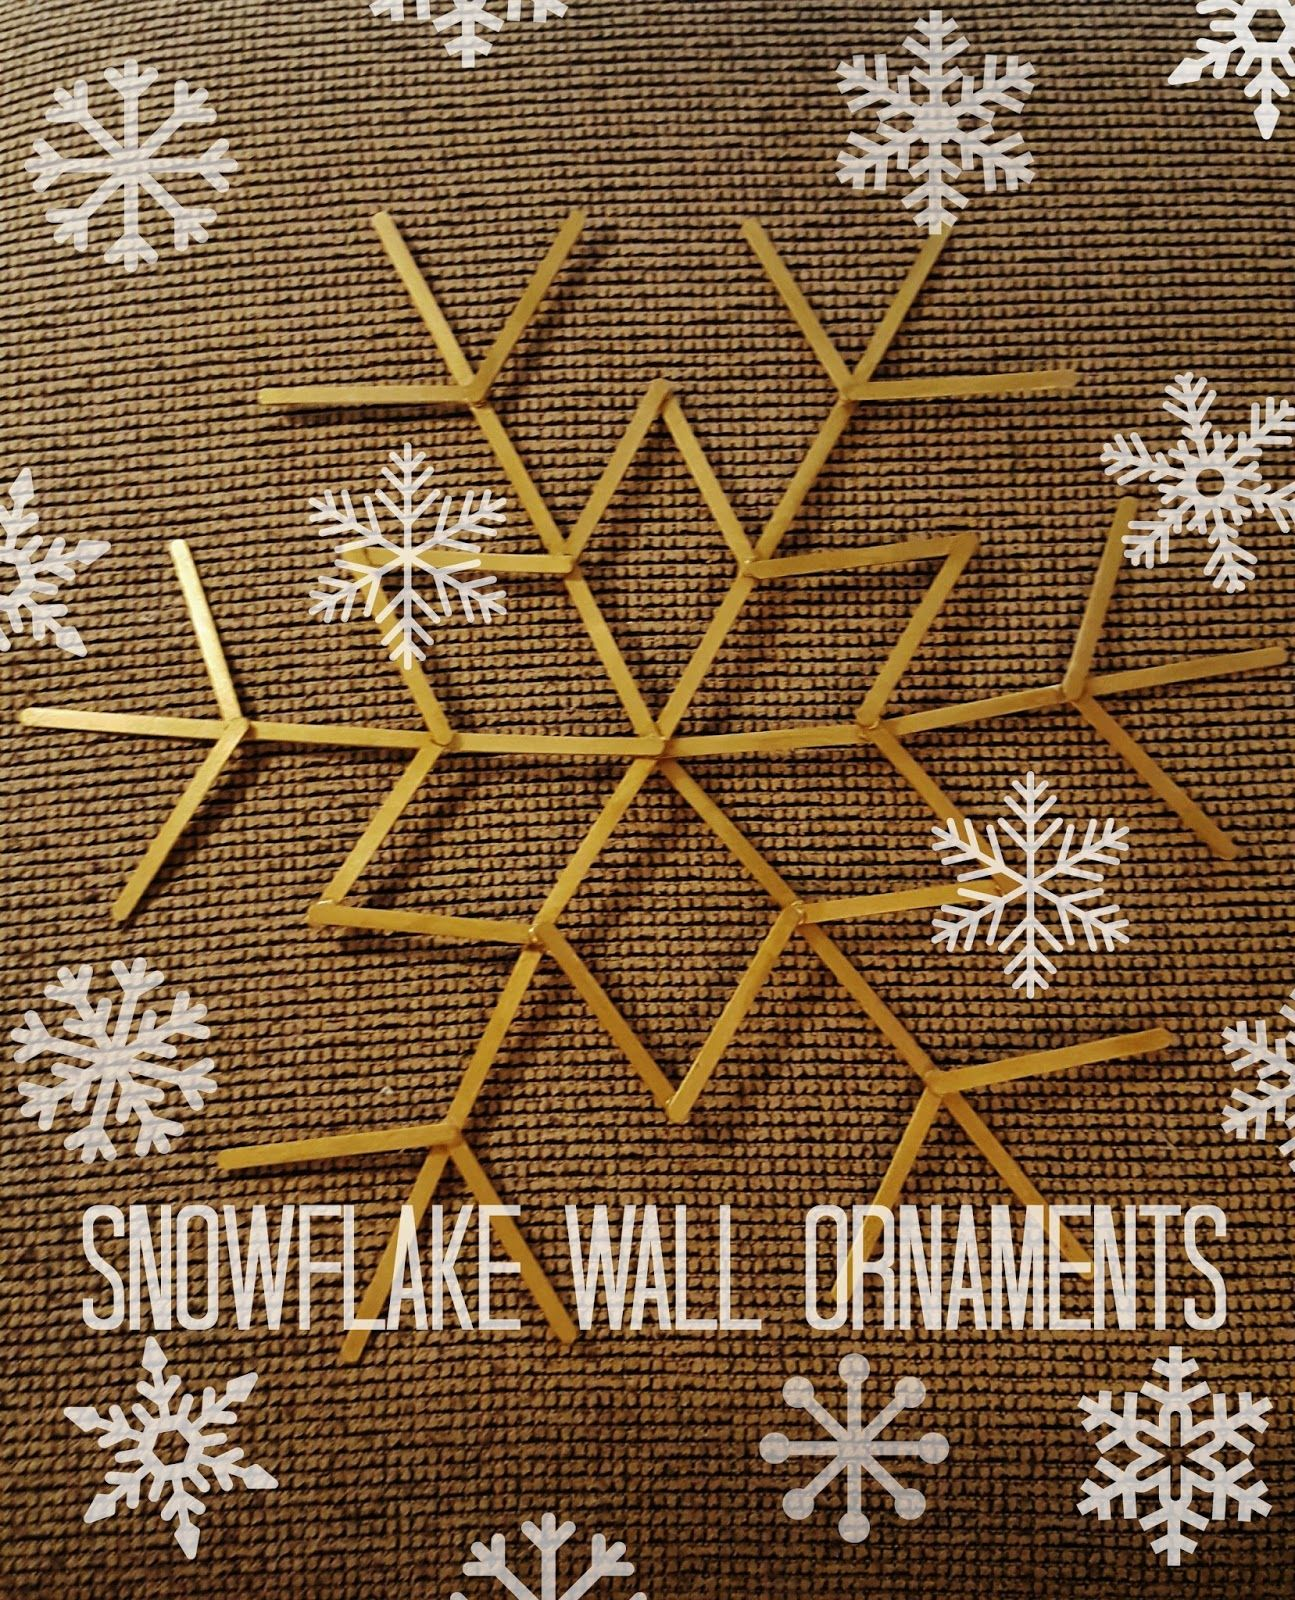 Kelsey's Craft Corner: Snowflake wall ornaments from popsicle sticks